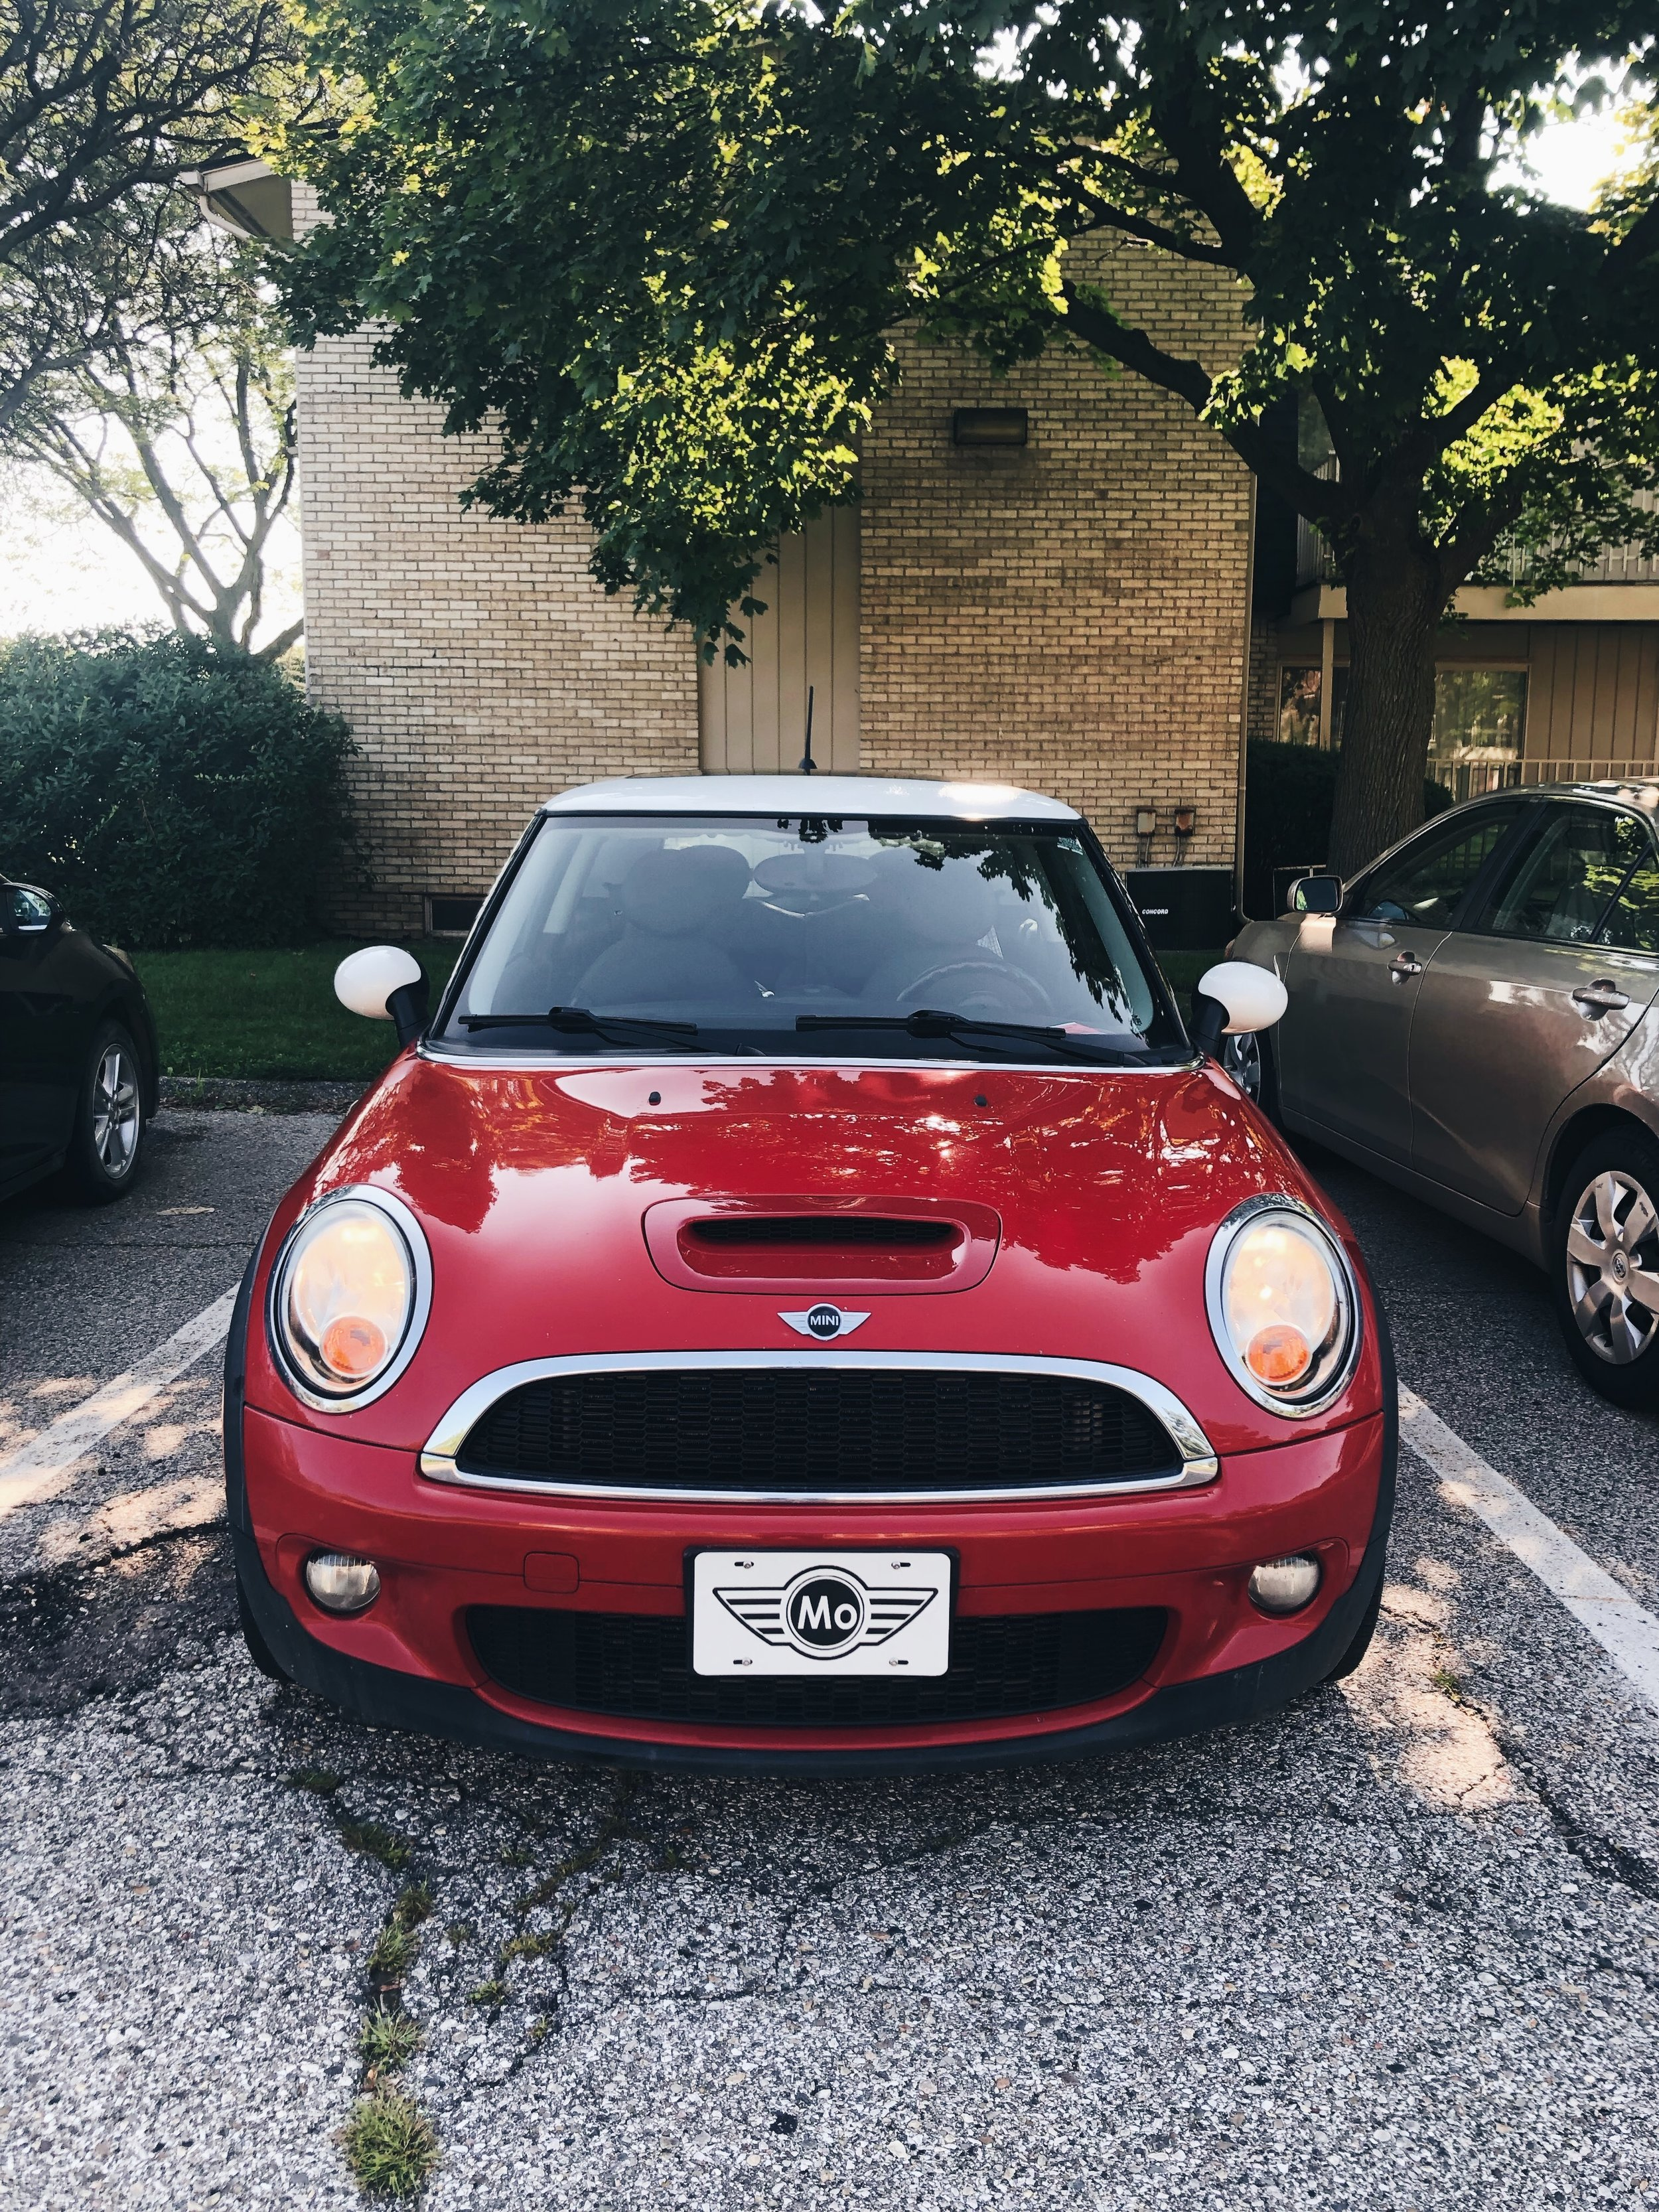 In case you were wondering, My Mini's name is Mo. - Let me know if you'd like to hear more about him and our adventures together in the comments below.